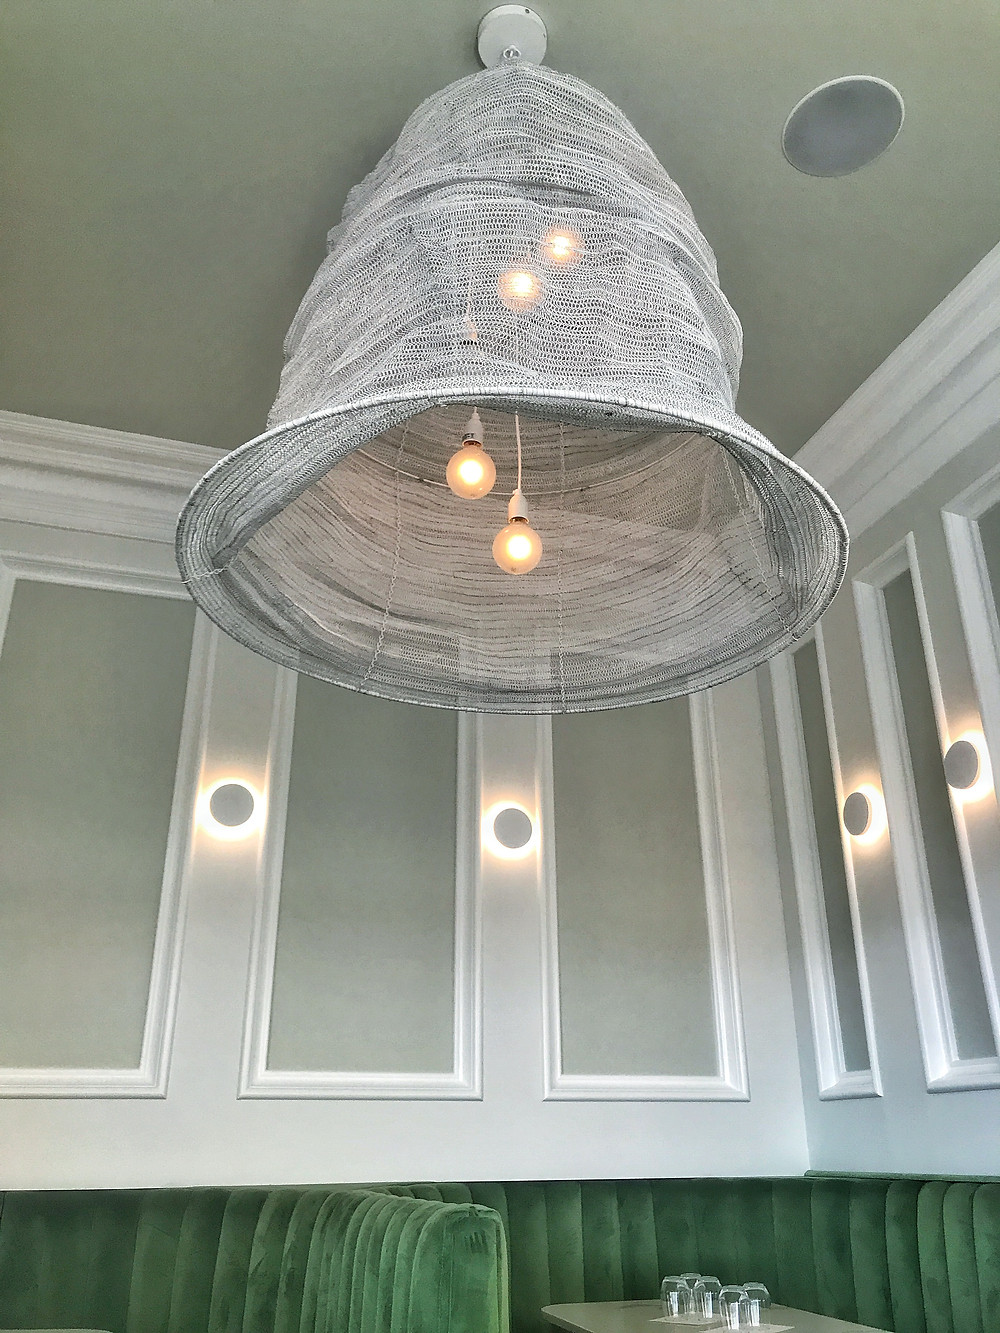 clover-creative-allan-grammar-penrith-review-wine-bar-light-fitting